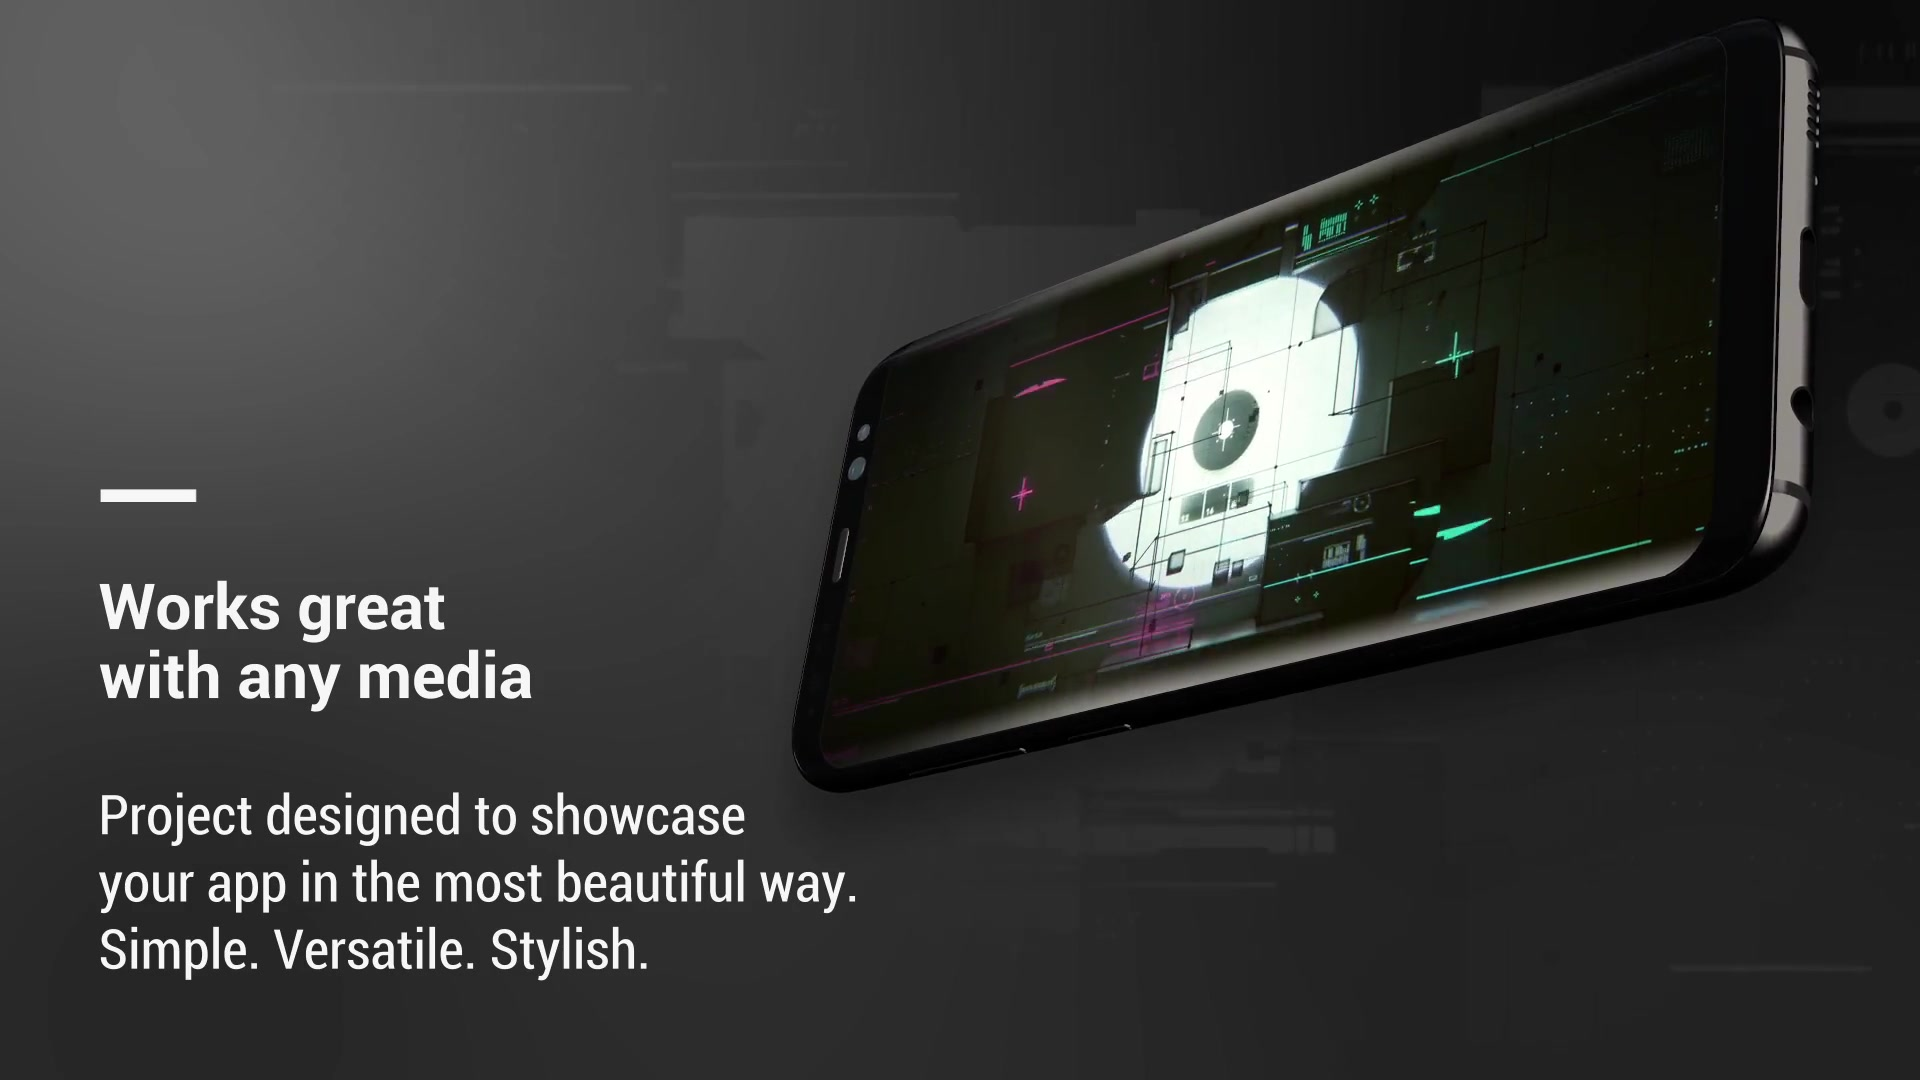 S Phone App | Presentation - Download Videohive 20789586